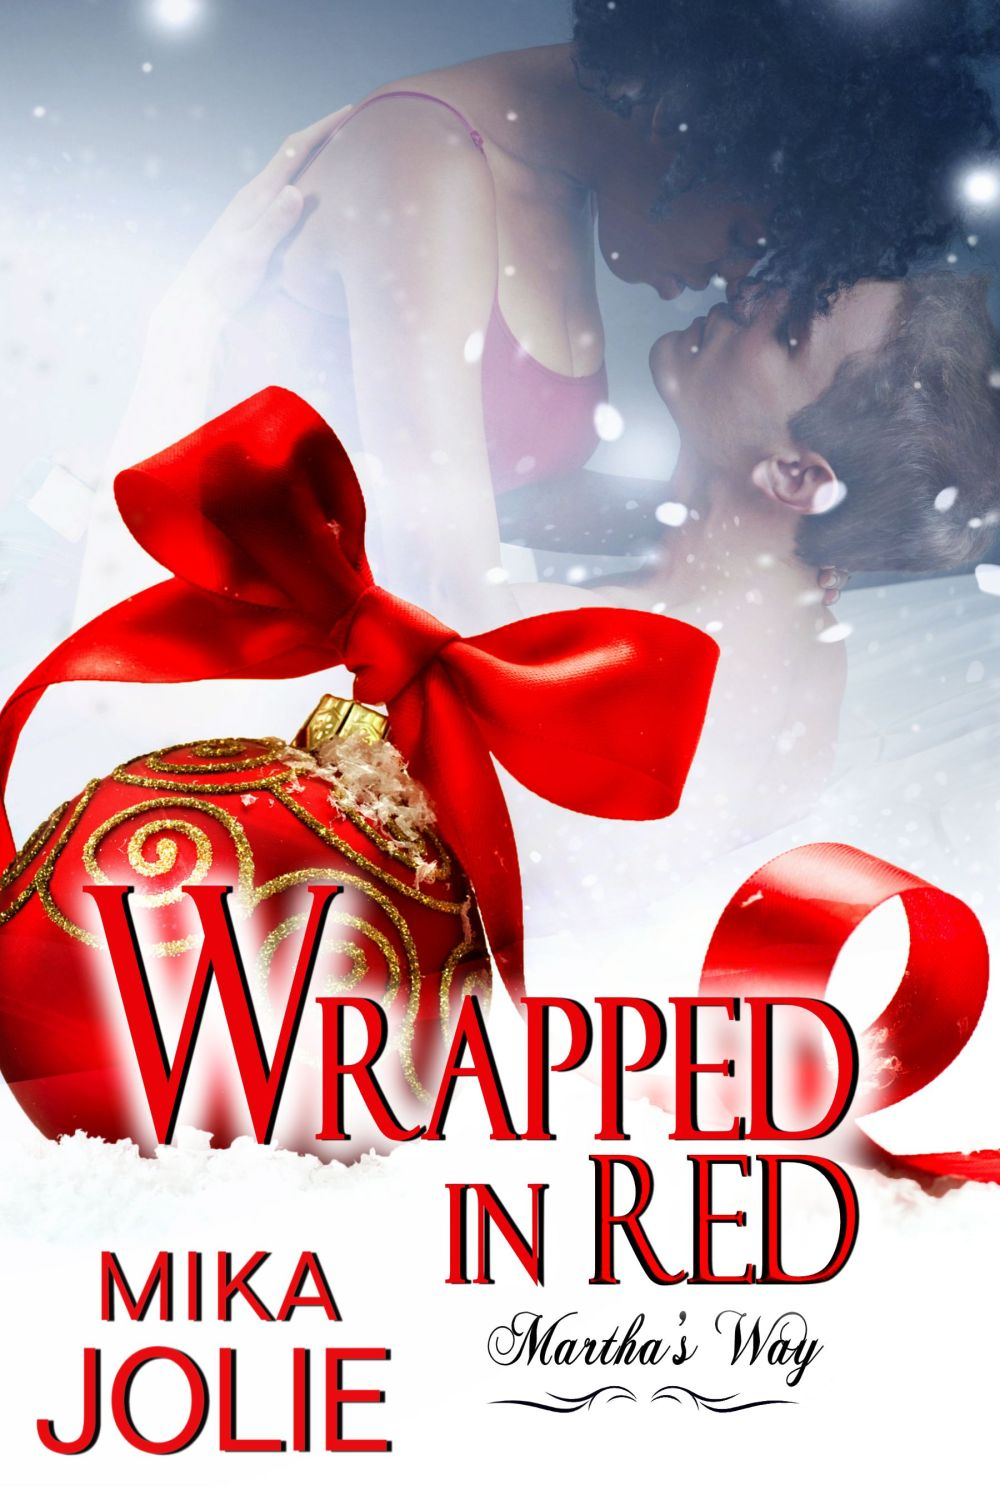 Wrapped in Red by Mika Jolie